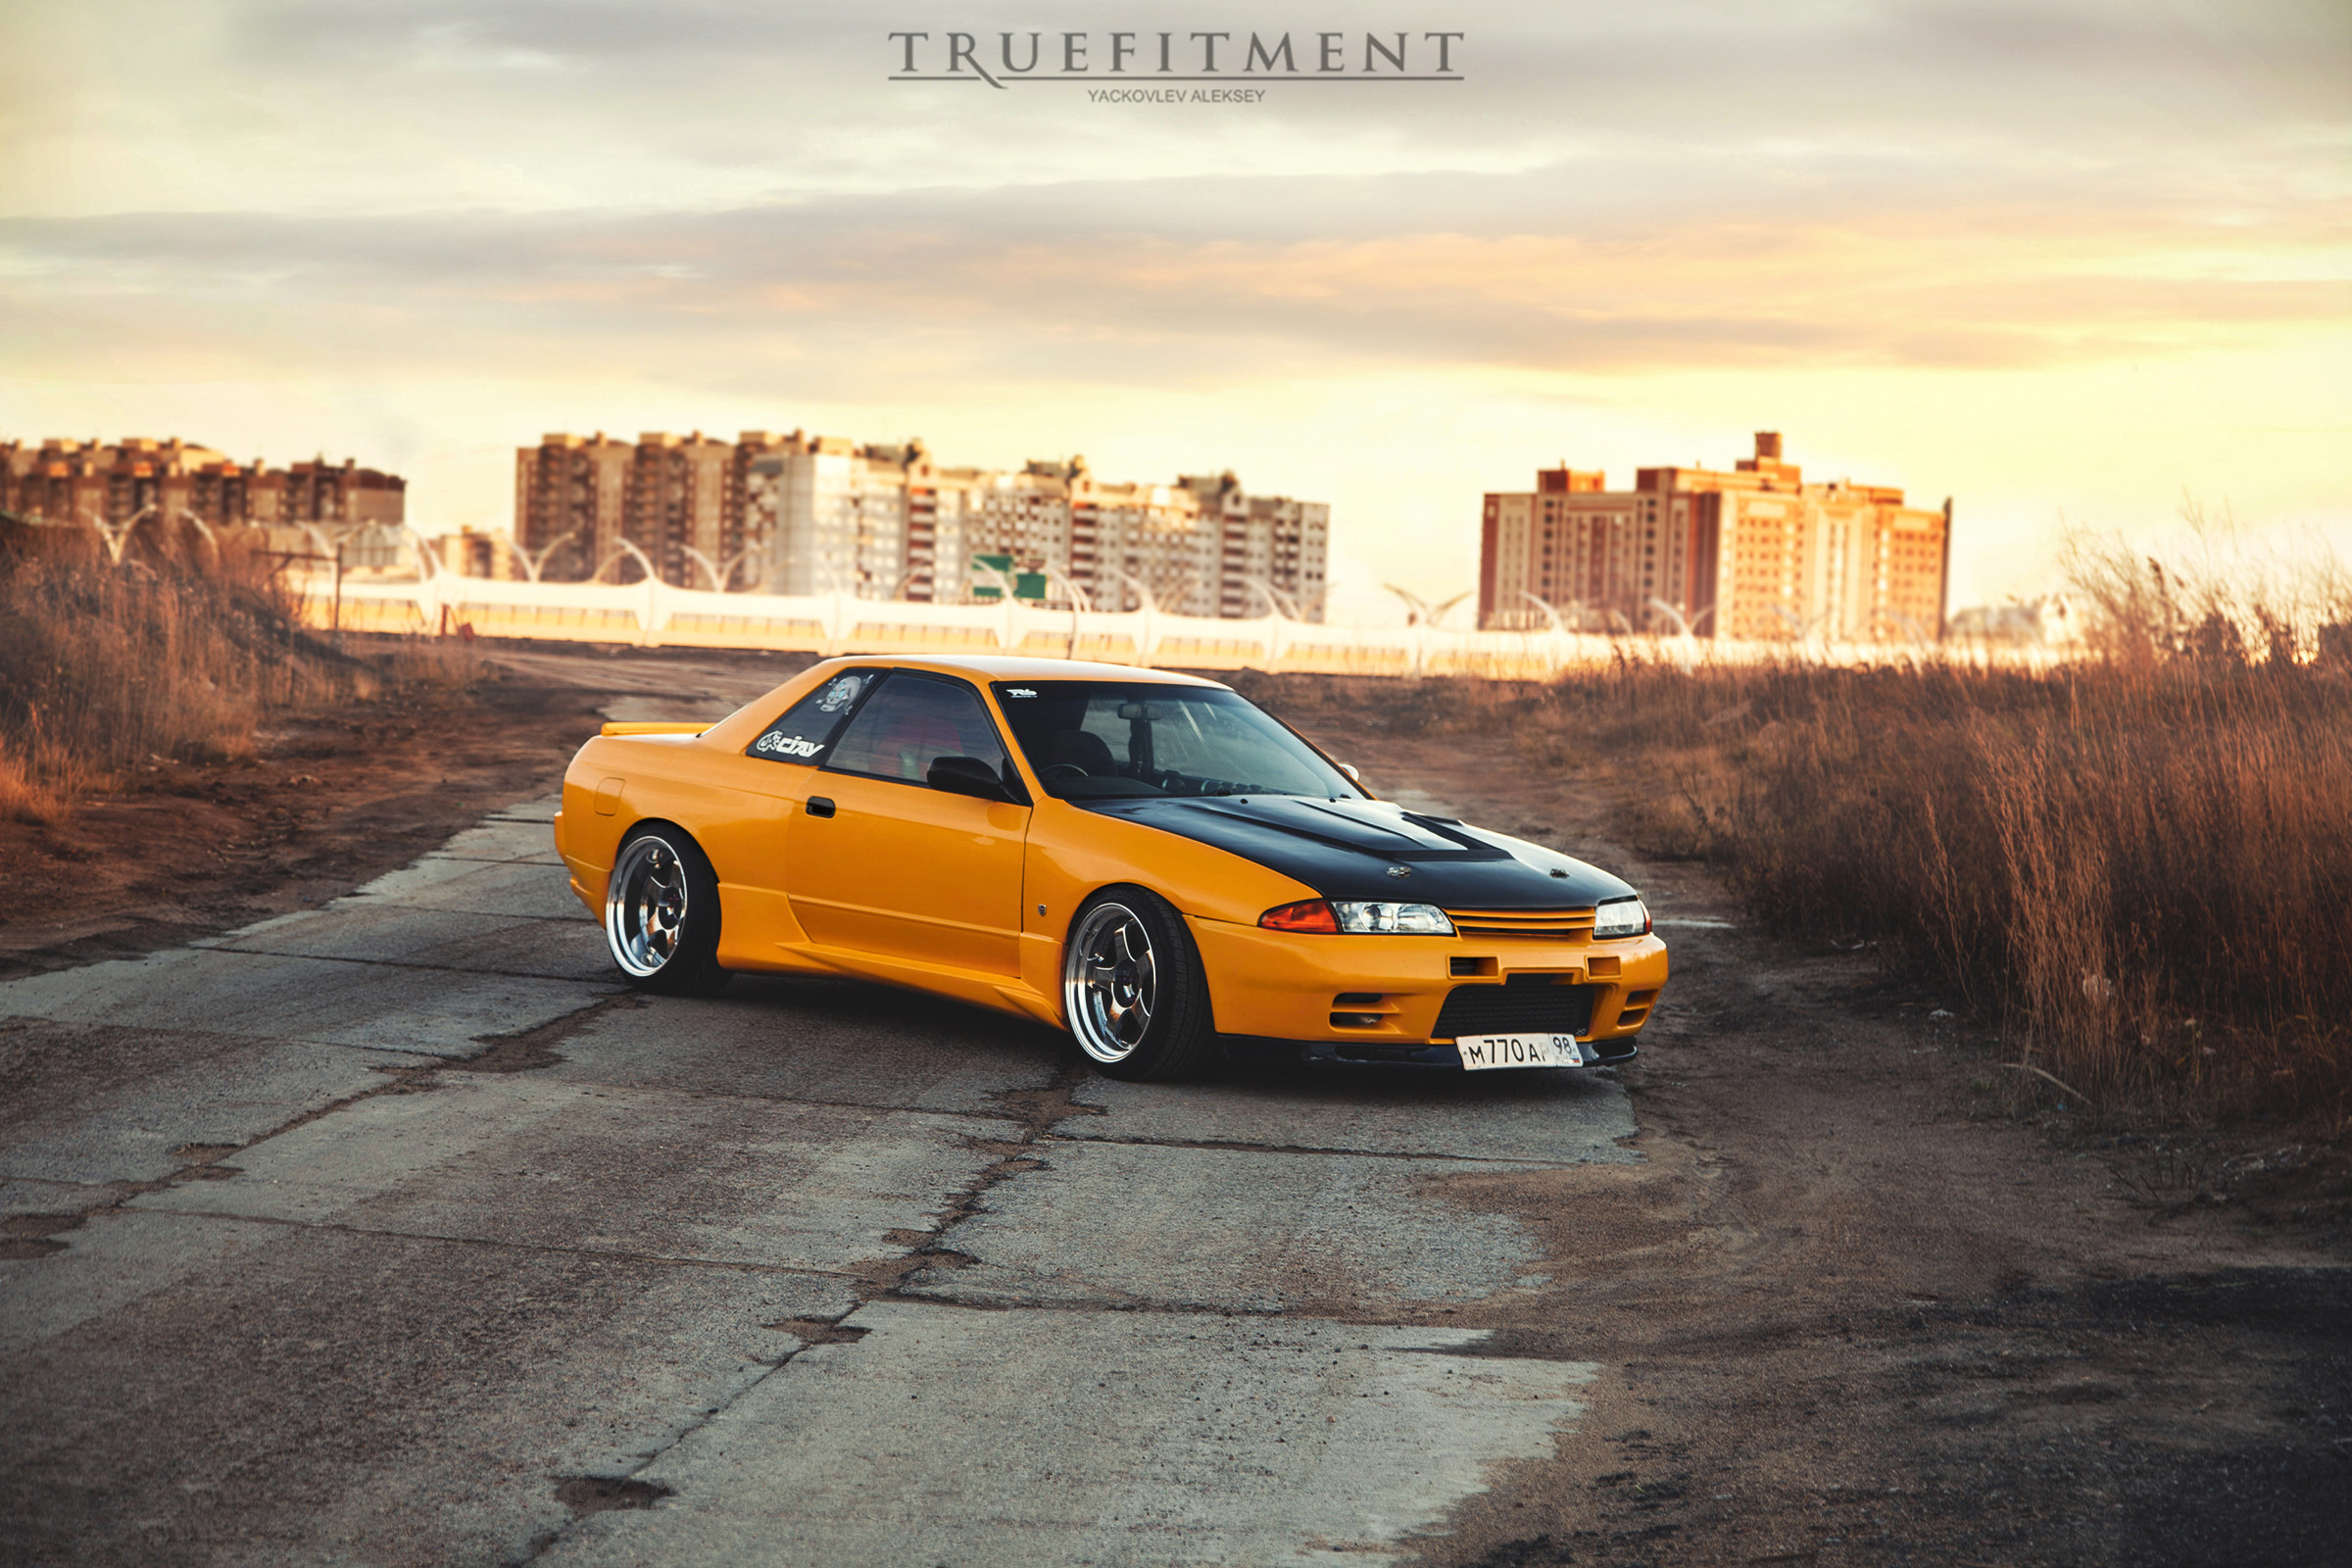 2400x1600 Cars Wallpaper Blue Nissan Skyline Wallpaper Phone Free Download